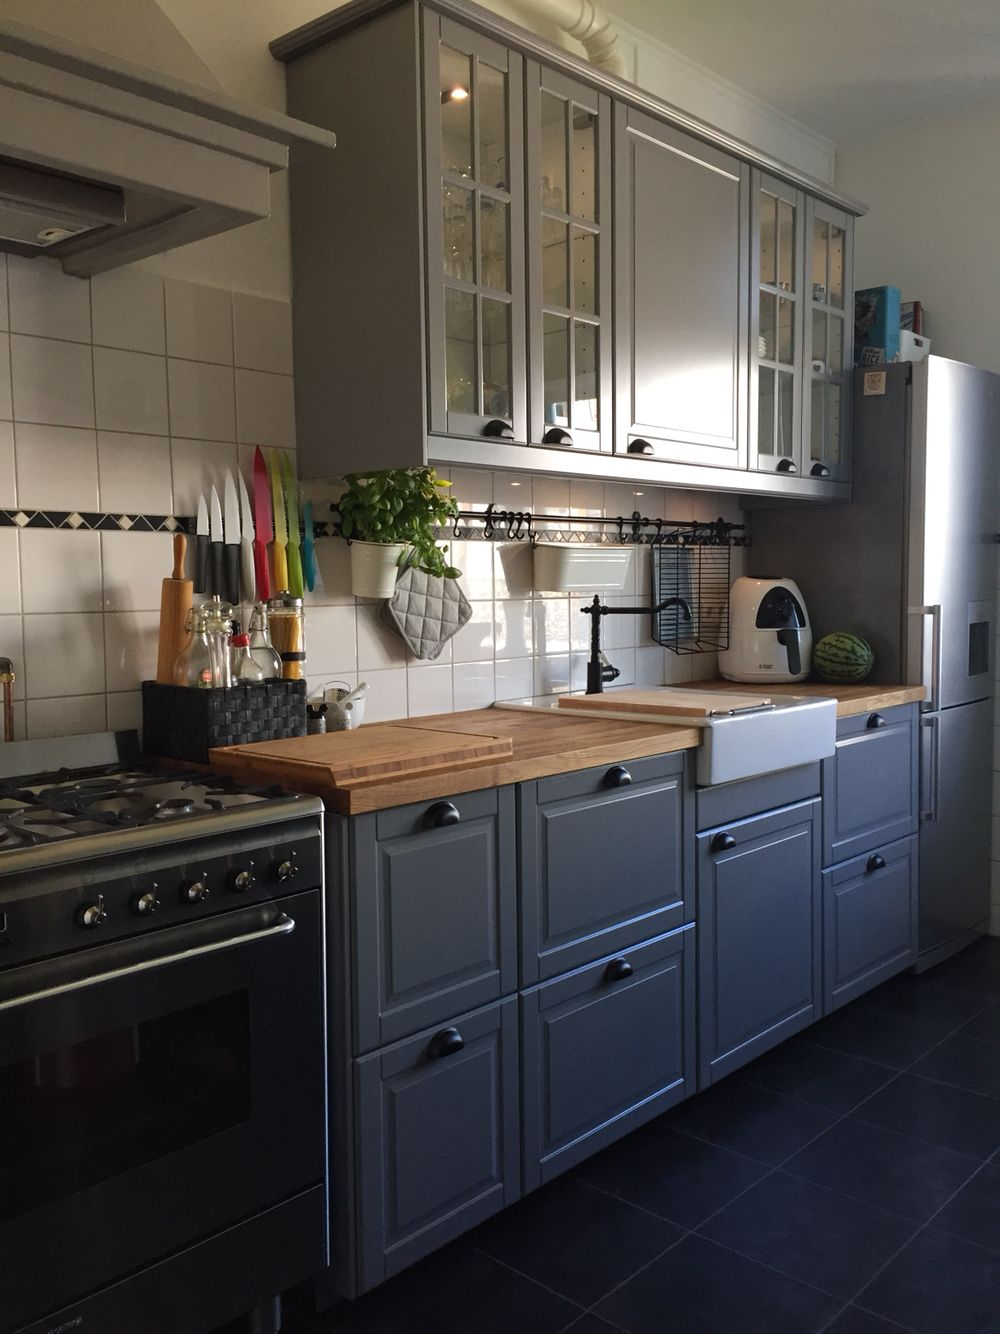 New kitchen ikea bodbyn grey kitchen inspiration - Mini cocina ikea ...